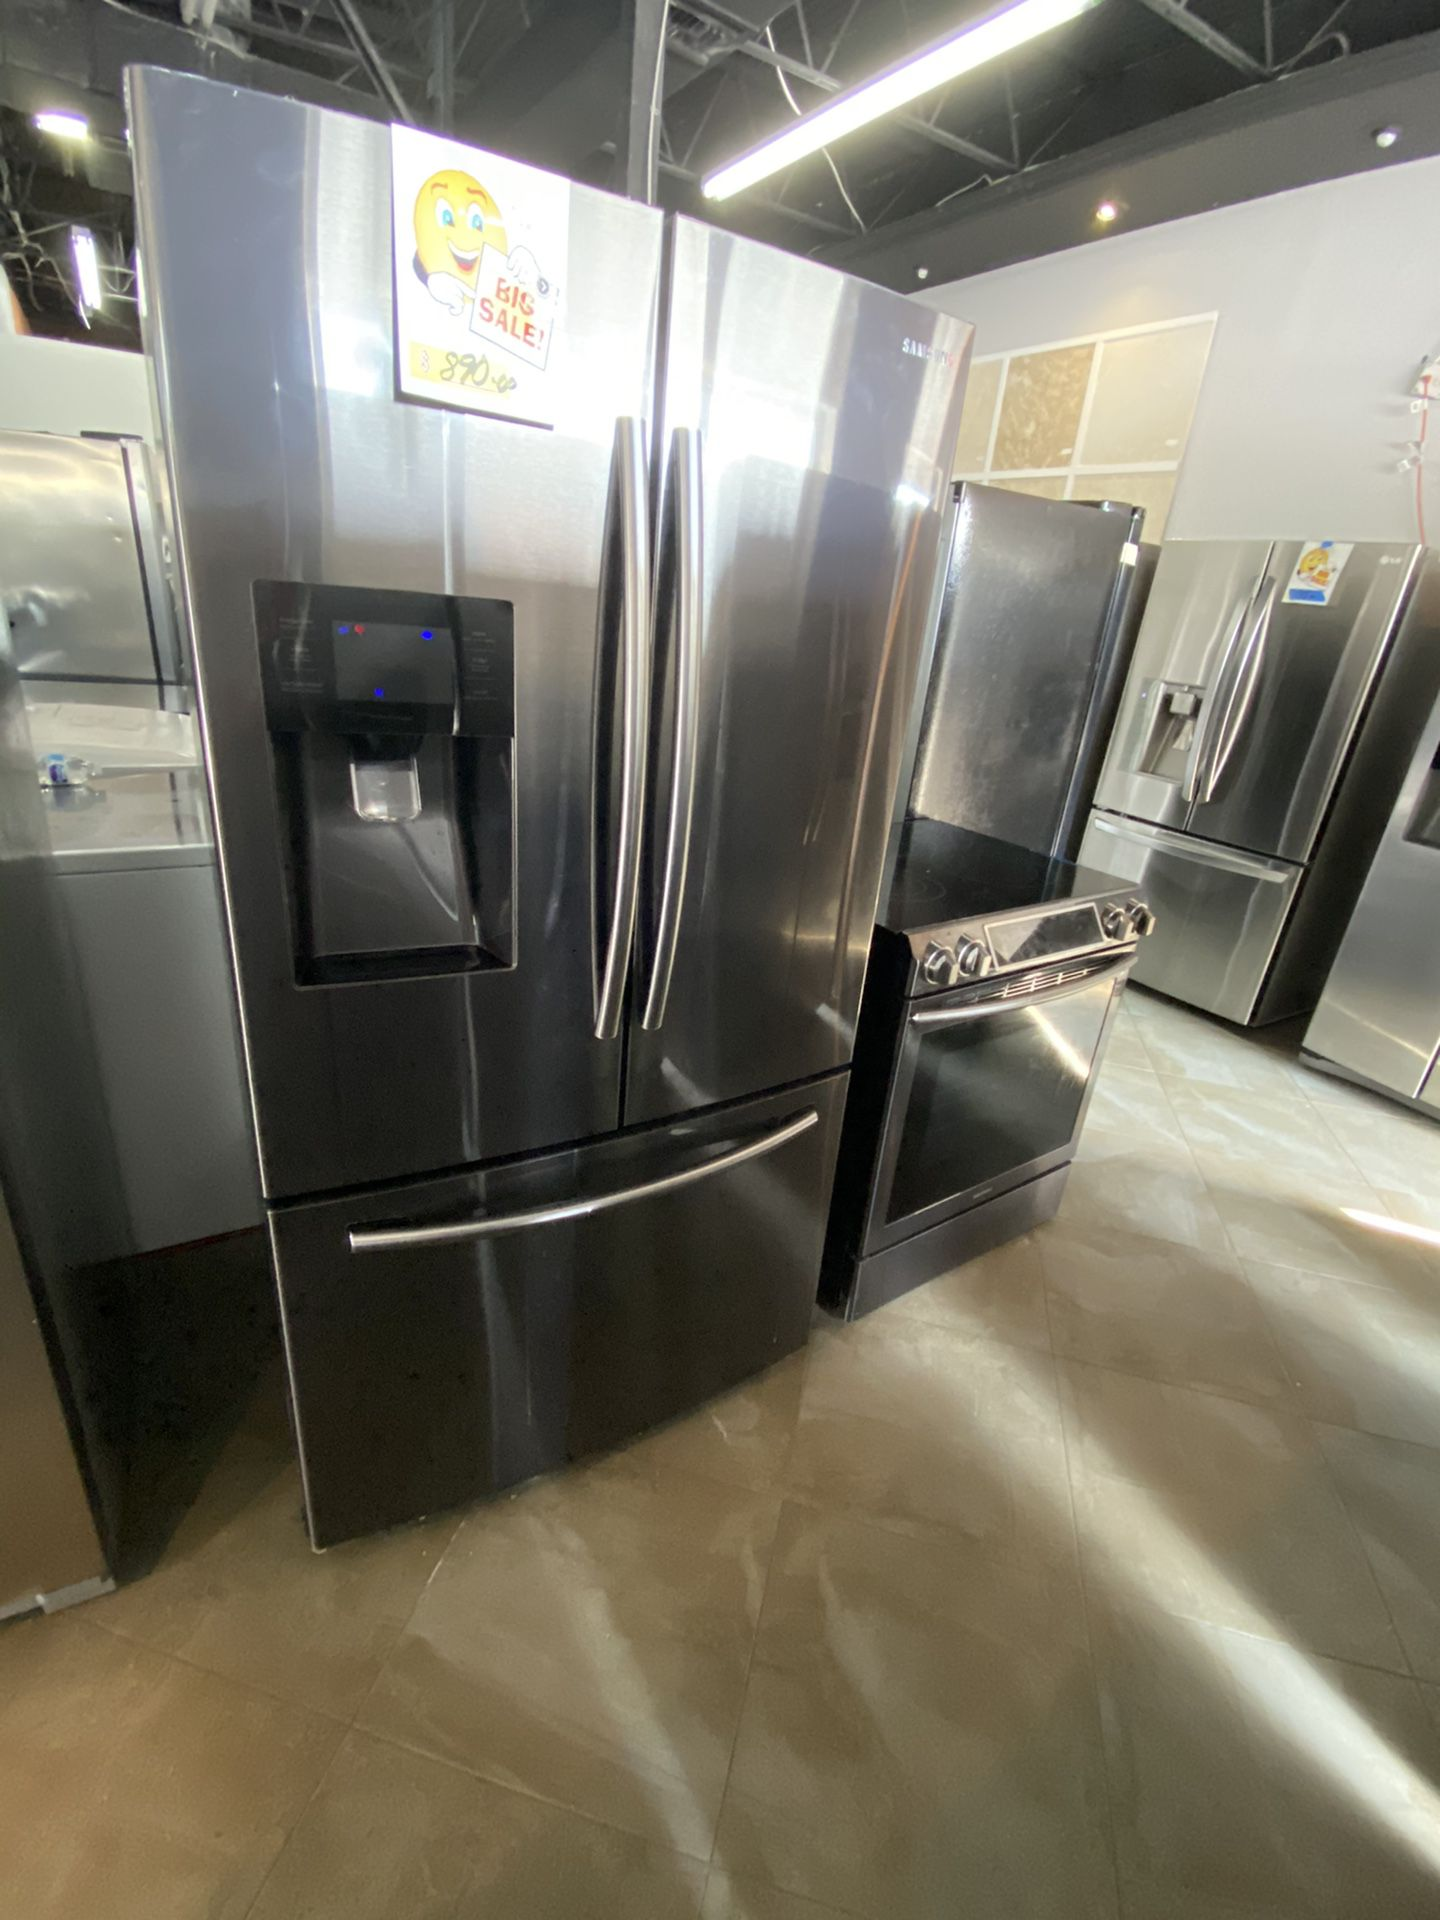 """Samsung stainless steel refrigerator 36"""" wide working perfect and 45 days warranty. Delivery service available"""